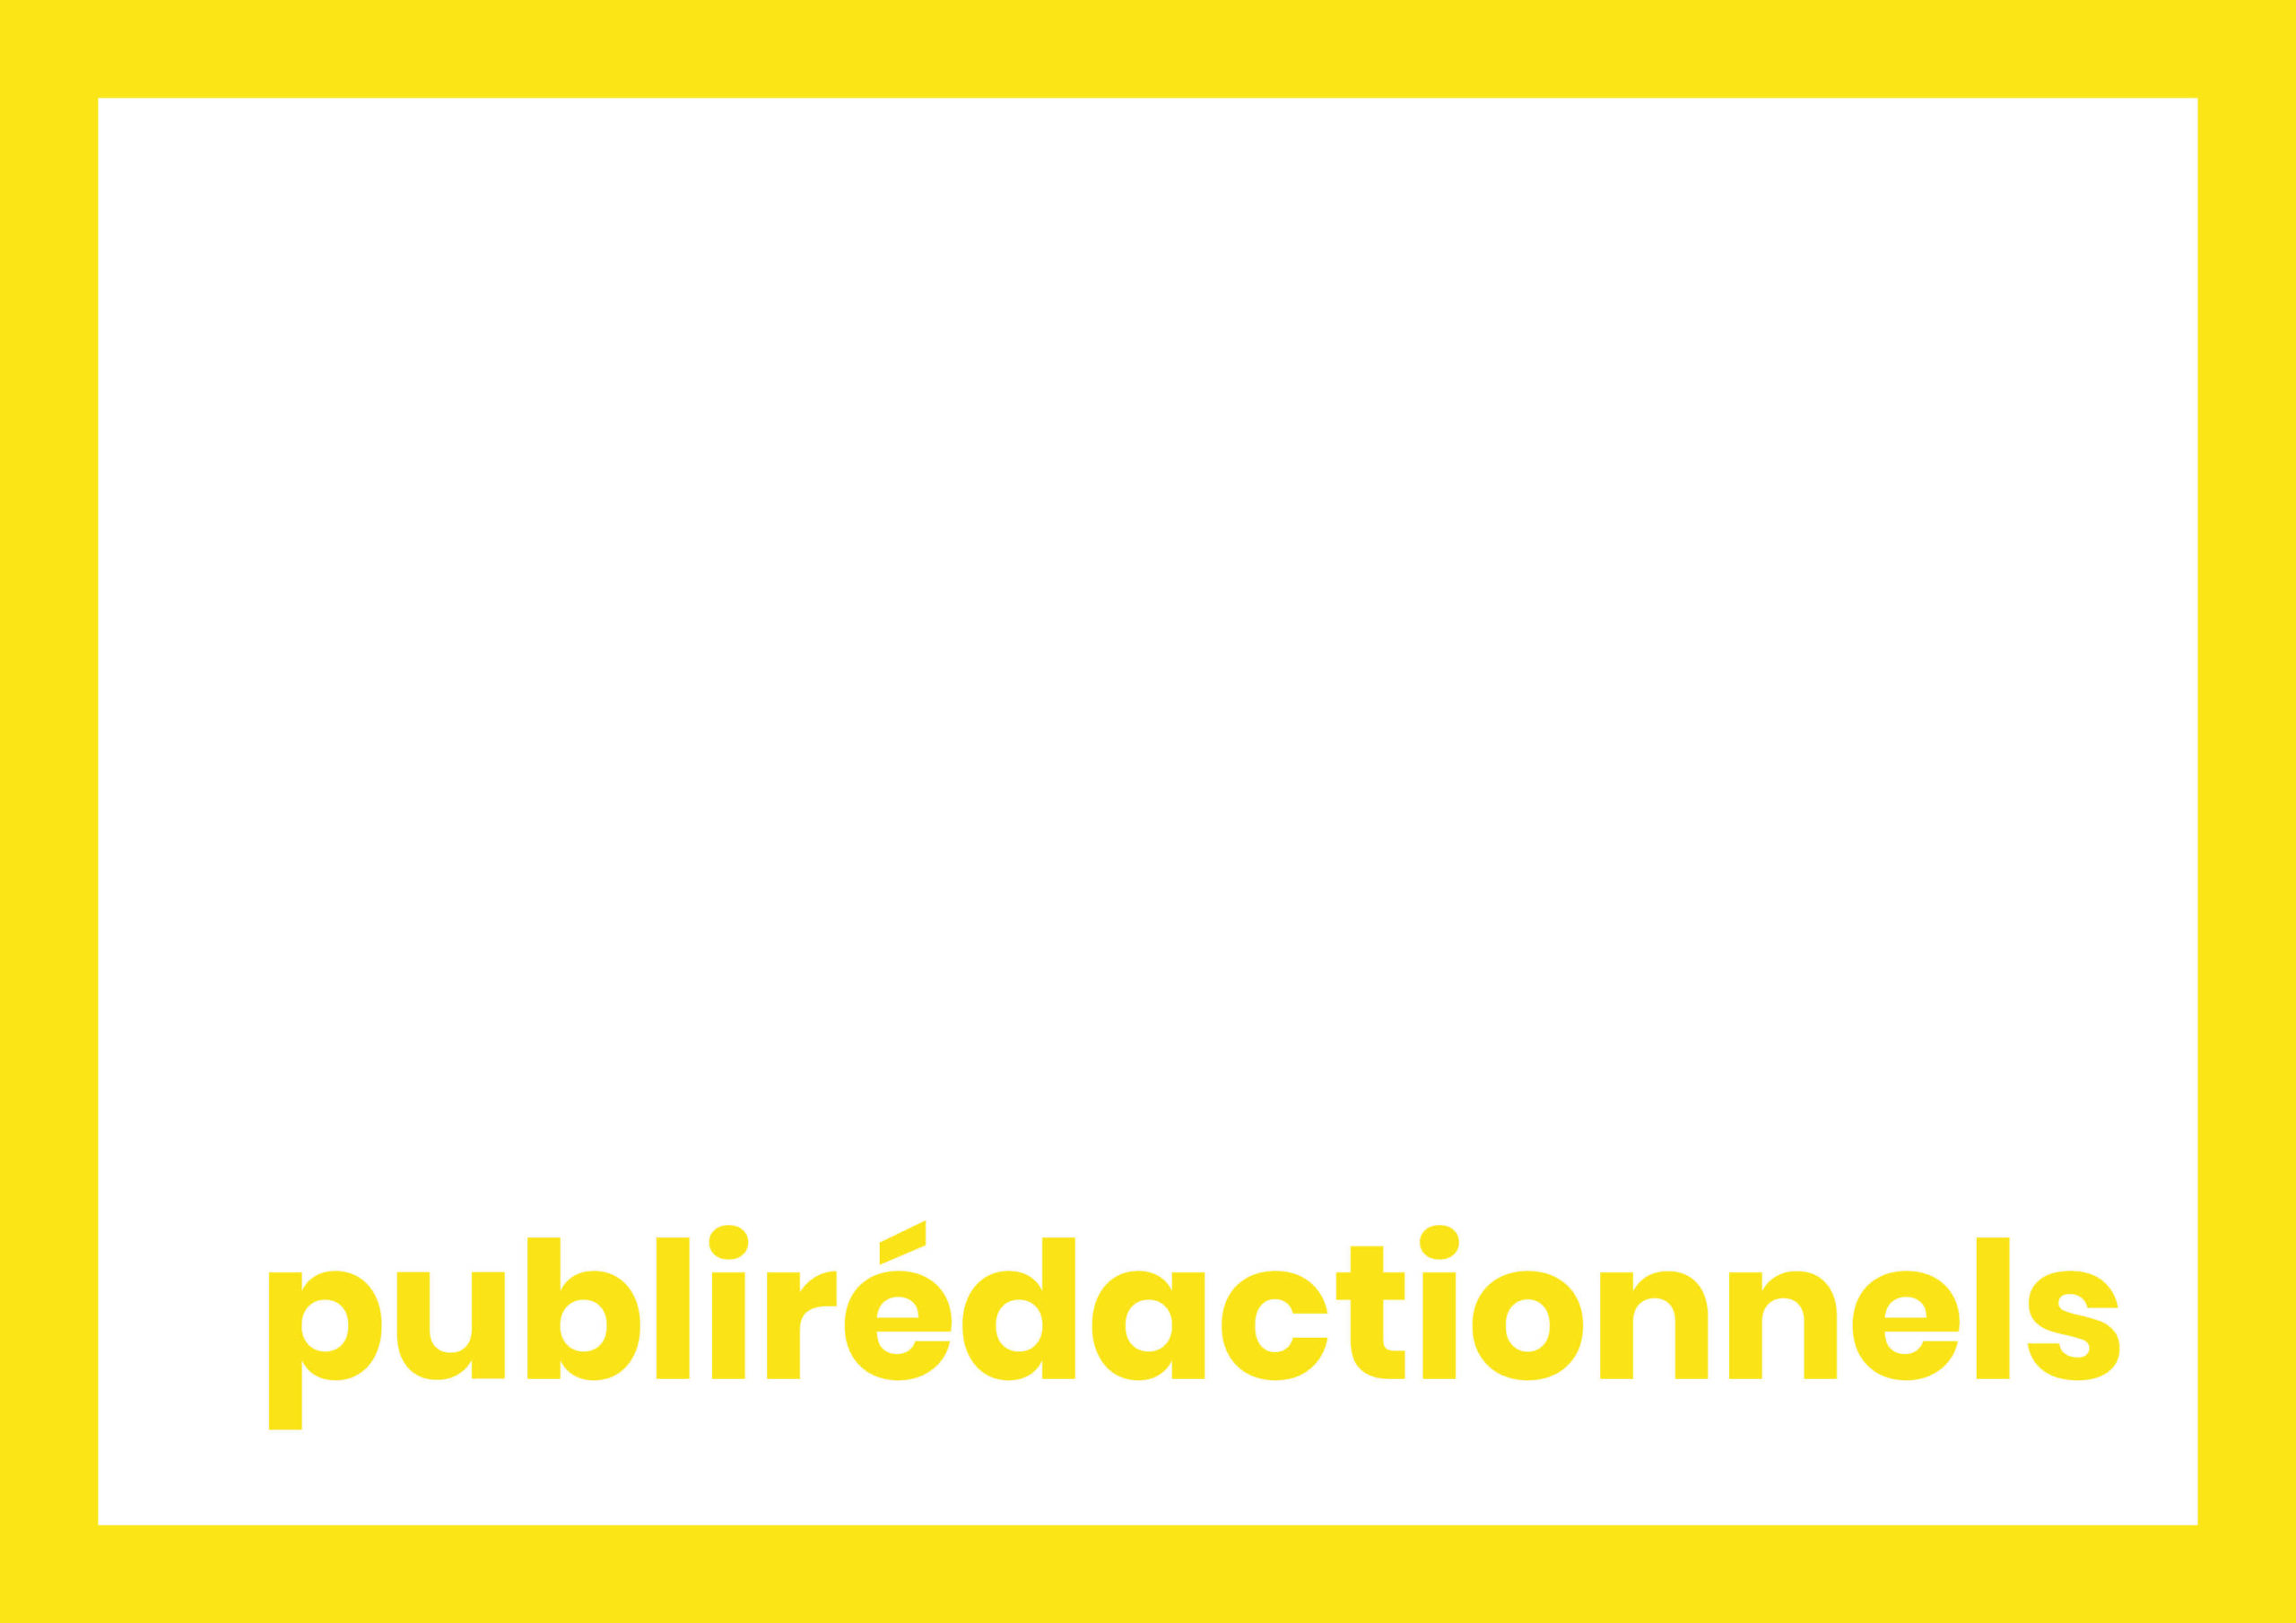 publirédactionnels book le mot magique conception rédaction freelance